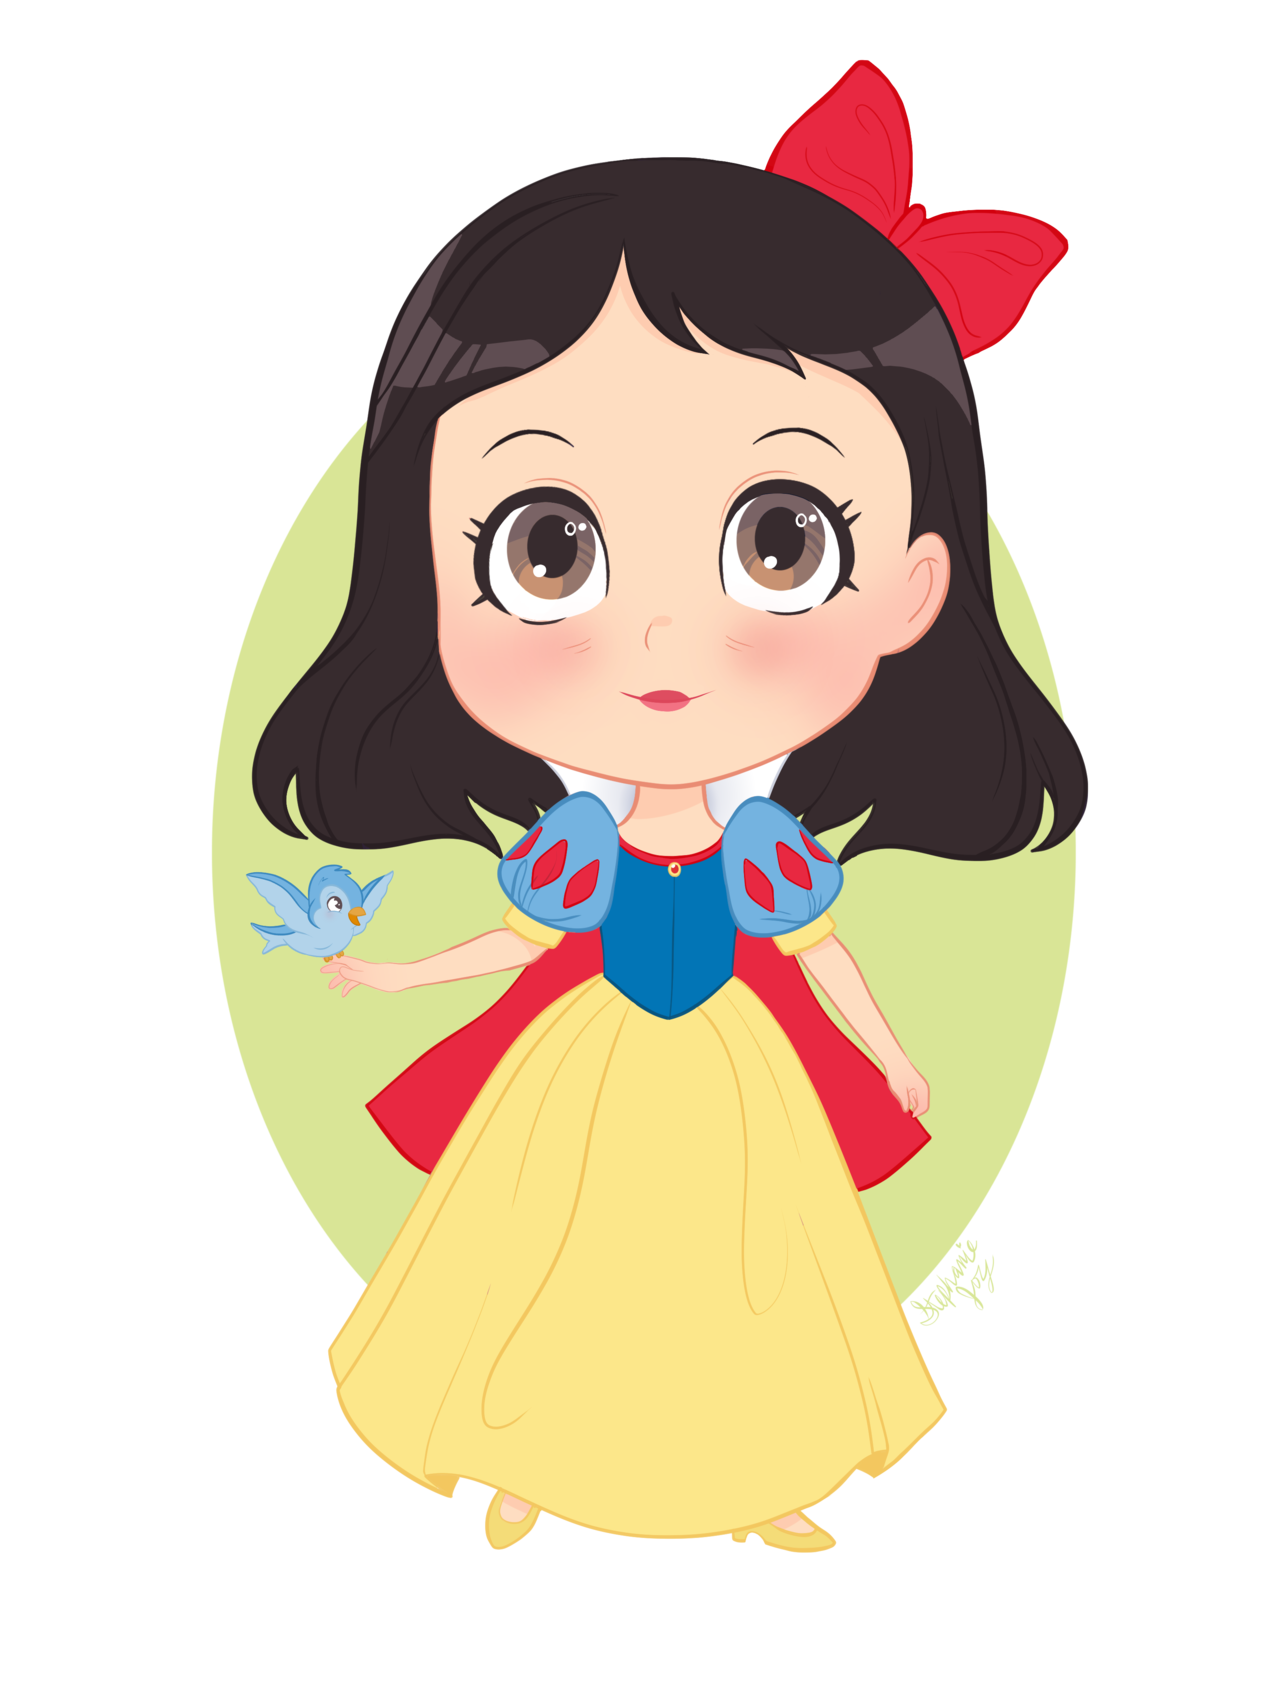 Drawing moana modern day. Snow white is just